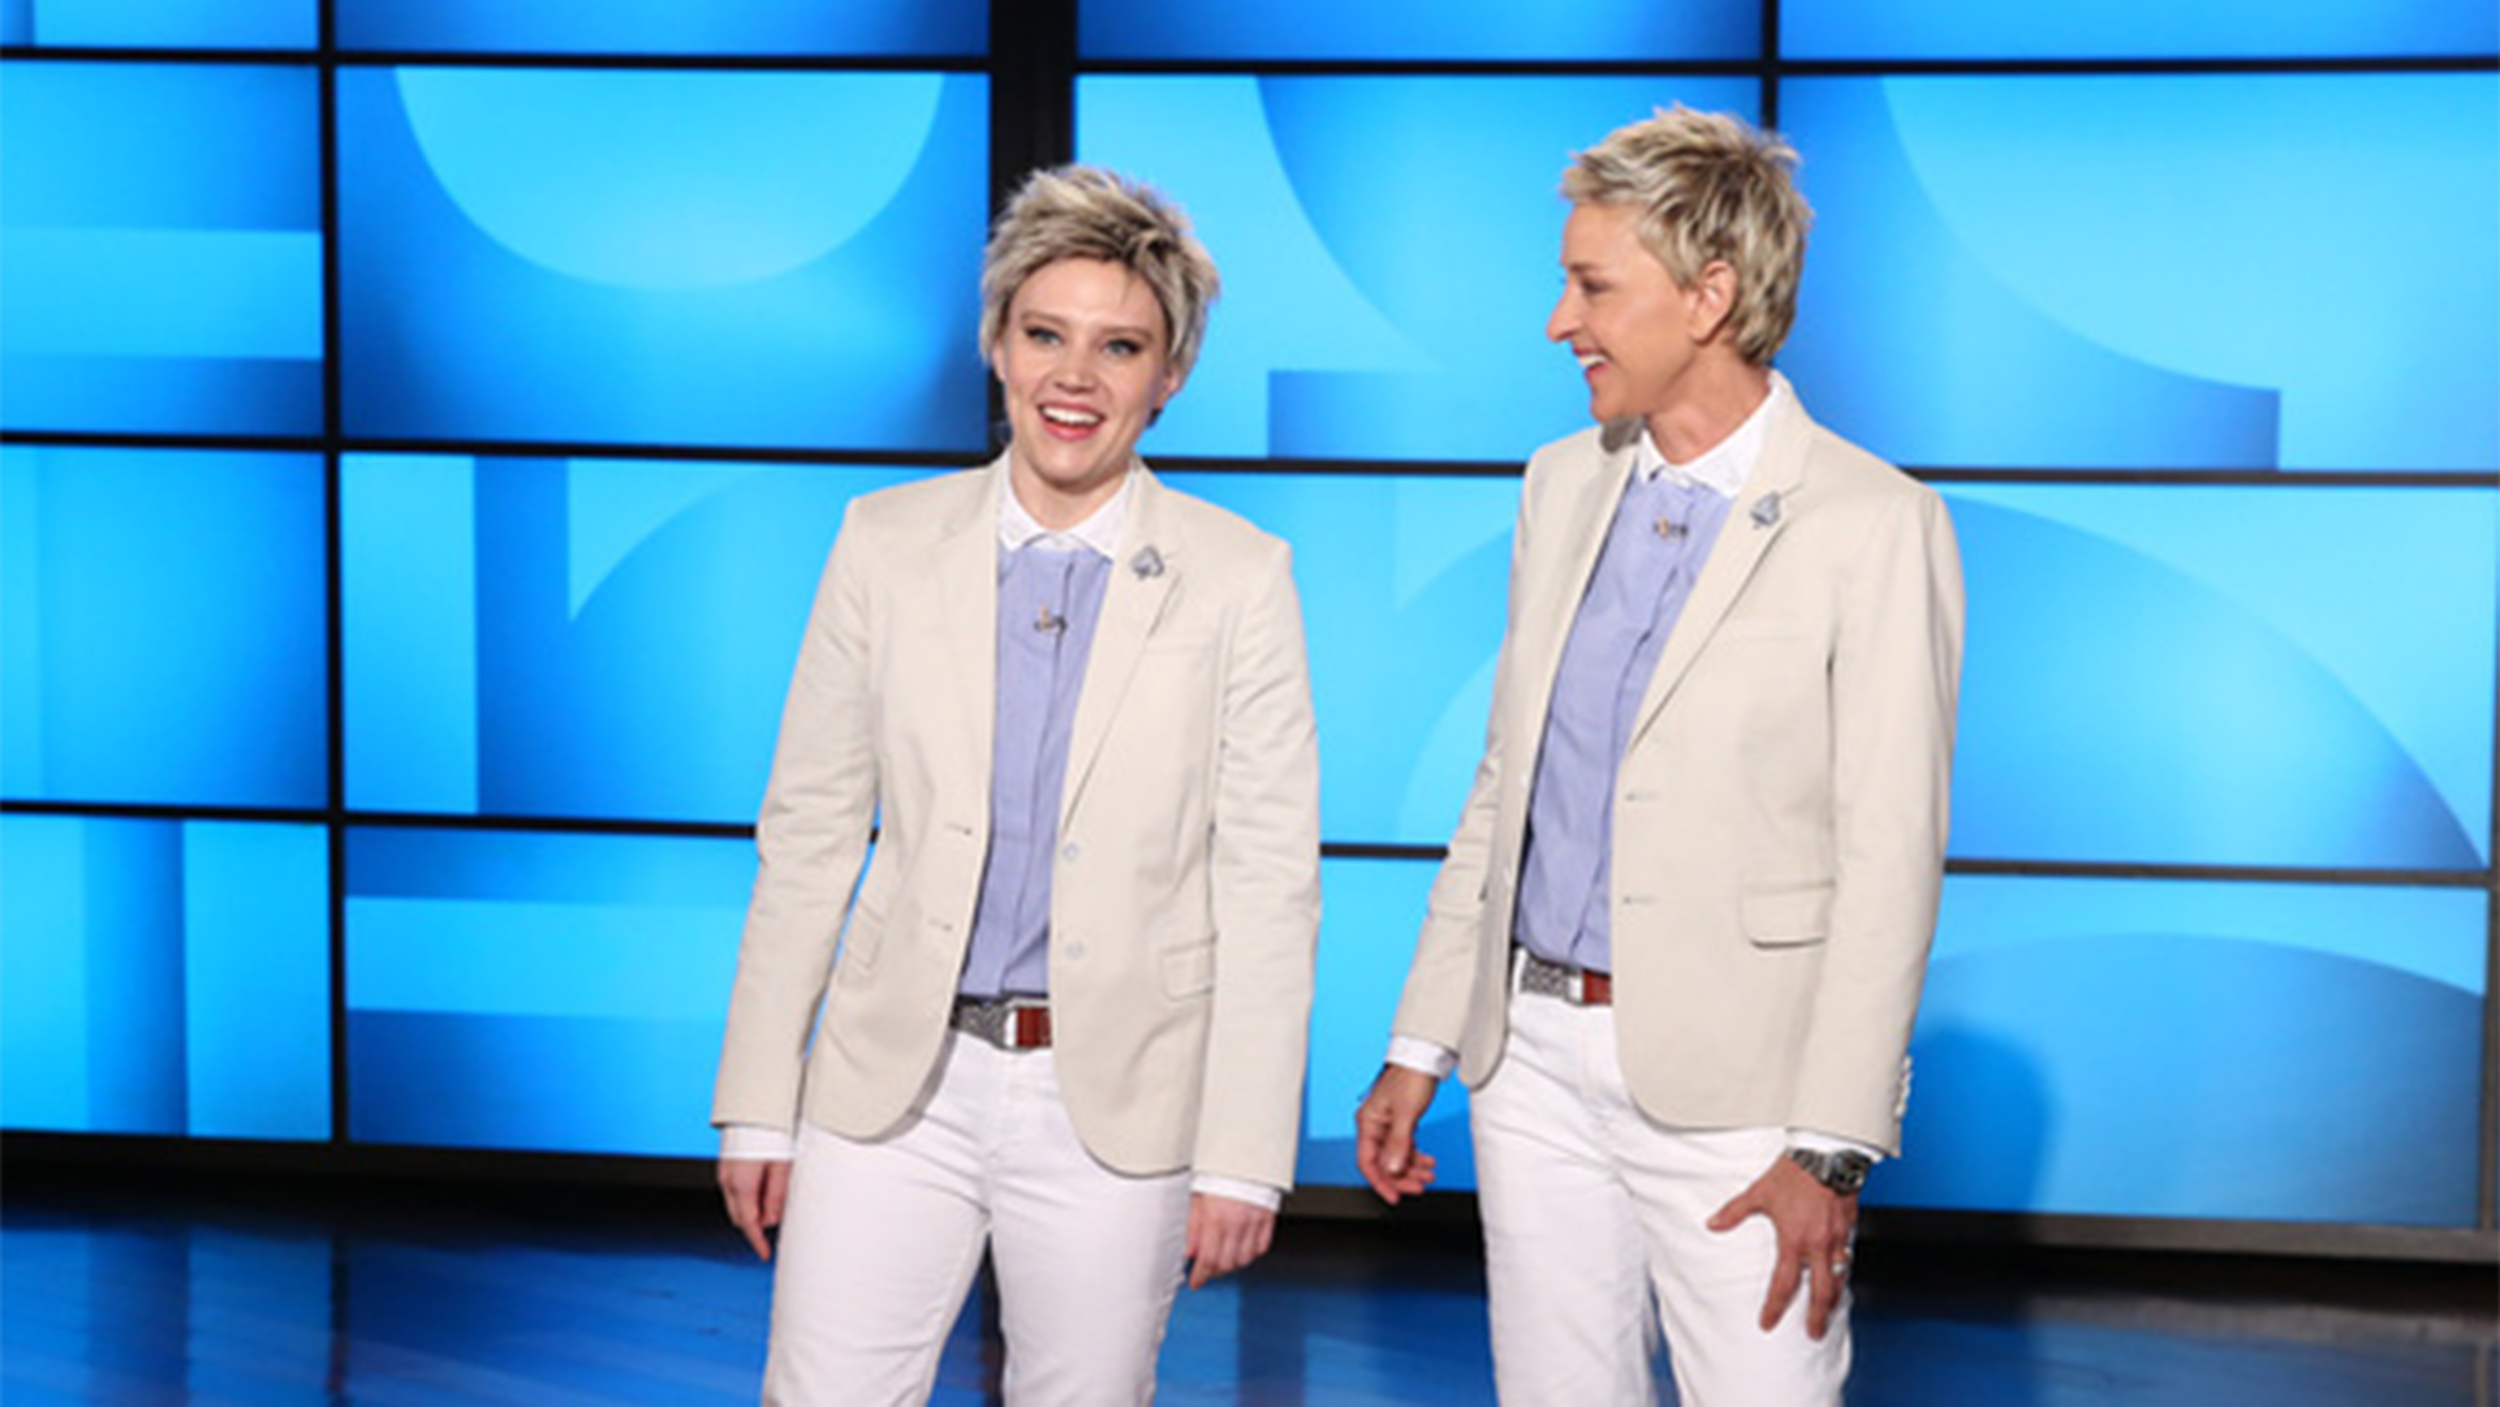 Kate mckinnon brings her ellen degeneres to 39 ellen 39 watch the clip - Ellen show videos ...